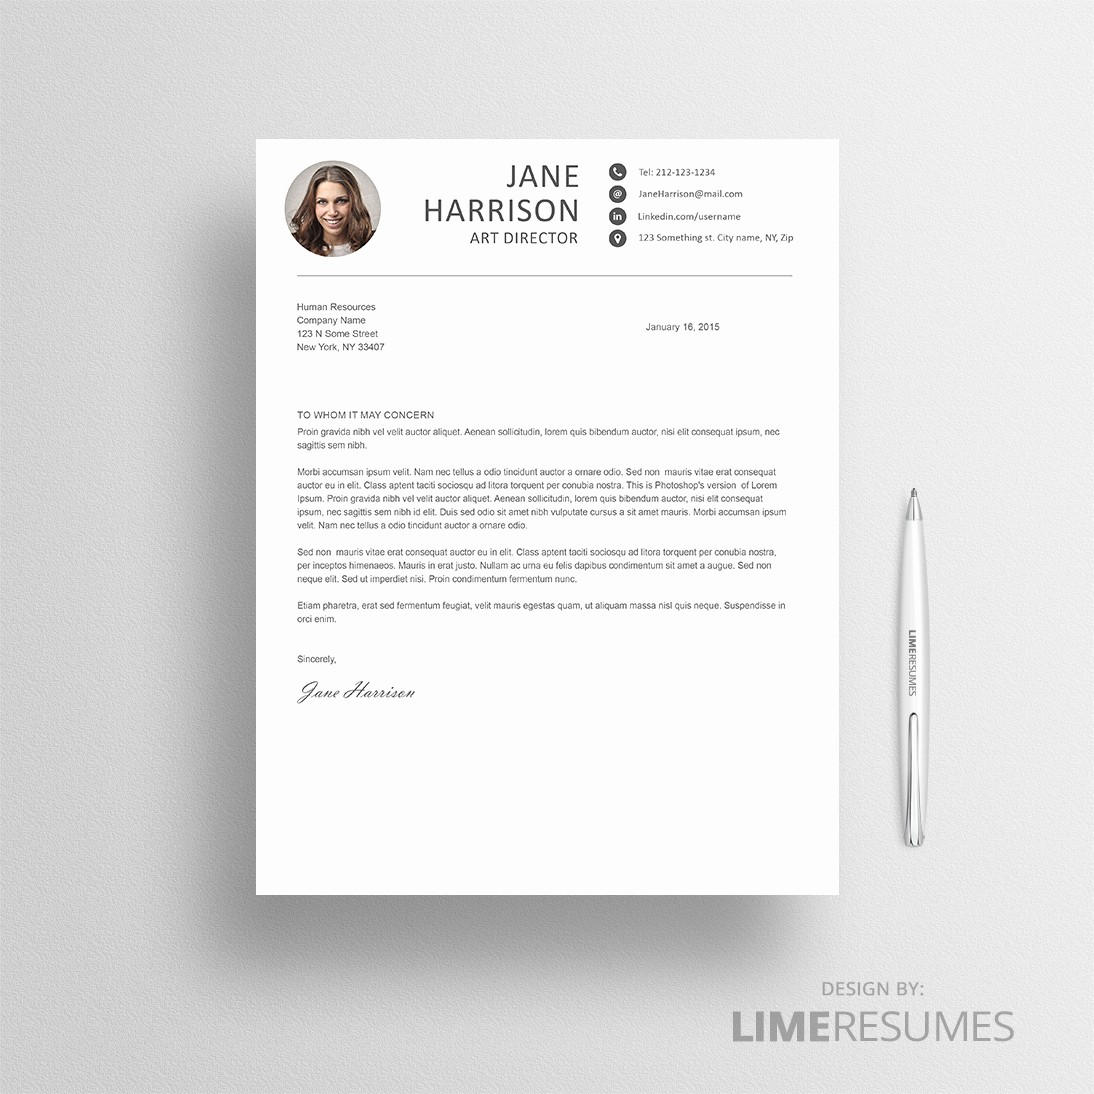 Free Creative Cover Letter Templates Best Of Creative Resume Template for Creatives Limeresumes